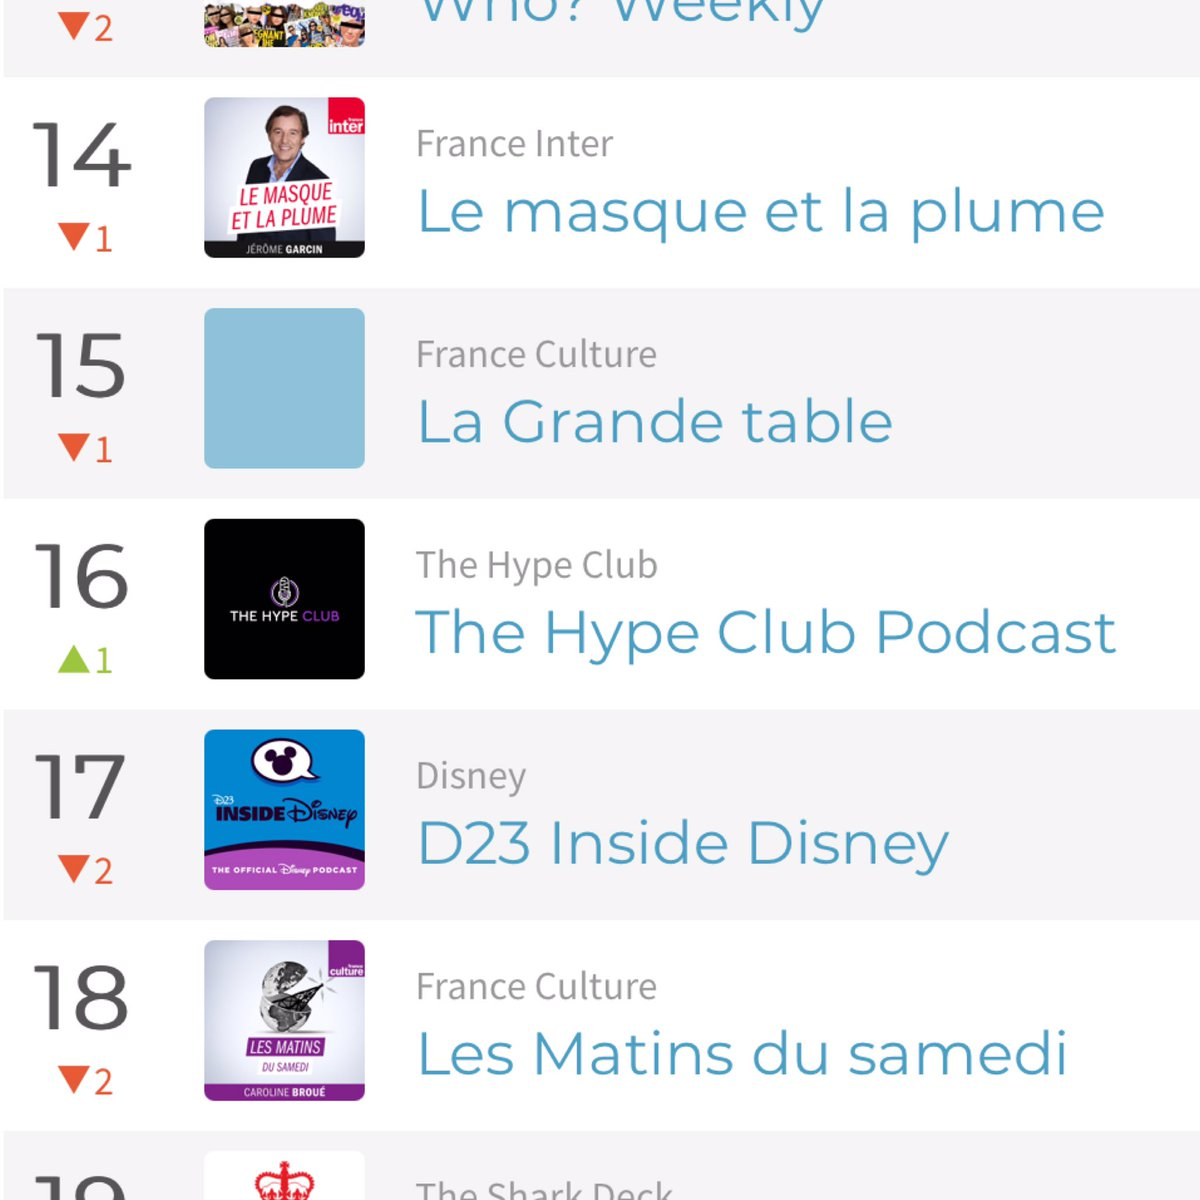 Can't believe it! 😳 The Hype Club Podcast is #16 - Apple Podcast - Poland - Entertainment News 🔥🙌 It's amazing to know we are reaching people around the world! 🌎 🔥 THANK YOU POLAND 🇵🇱 #podcasts #PodcastRecommendations #celebritynews #EntertainmentNews #worldwide #Trending https://t.co/xDBa1soTKR